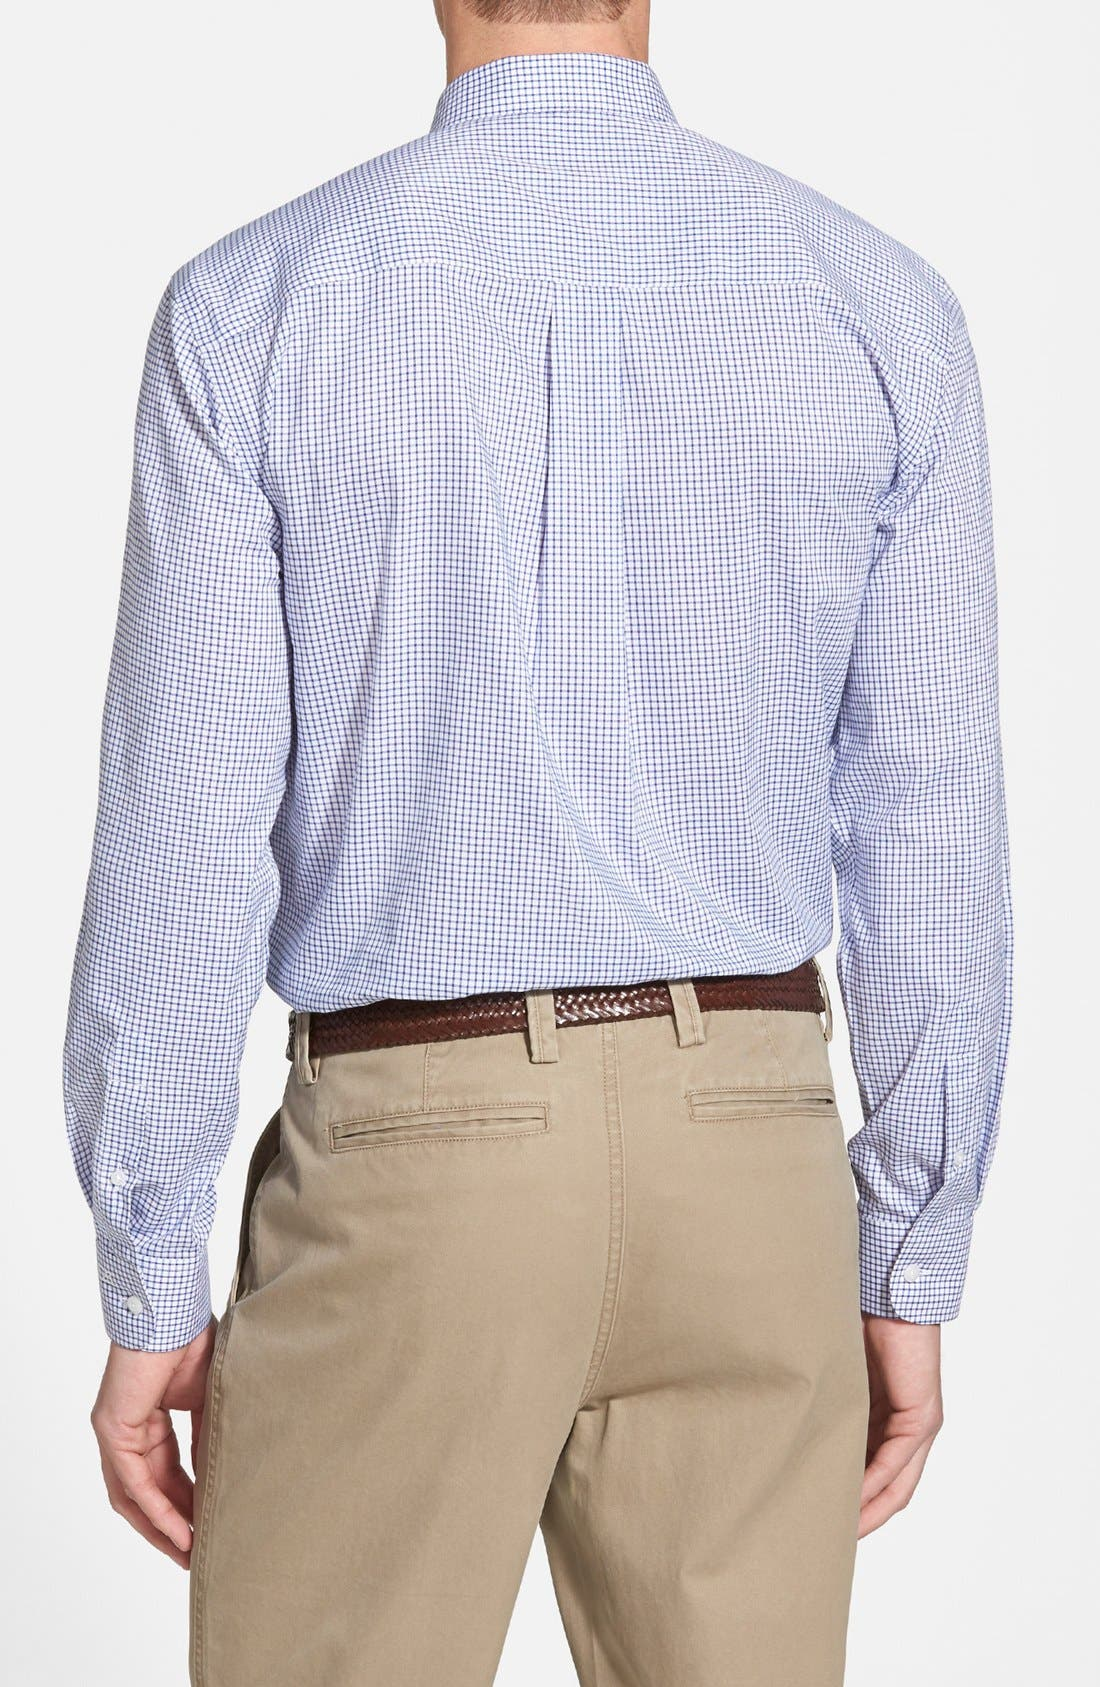 'Epic Easy Care' Classic Fit Wrinkle Free Tattersall Plaid Sport Shirt,                             Alternate thumbnail 3, color,                             French Blue